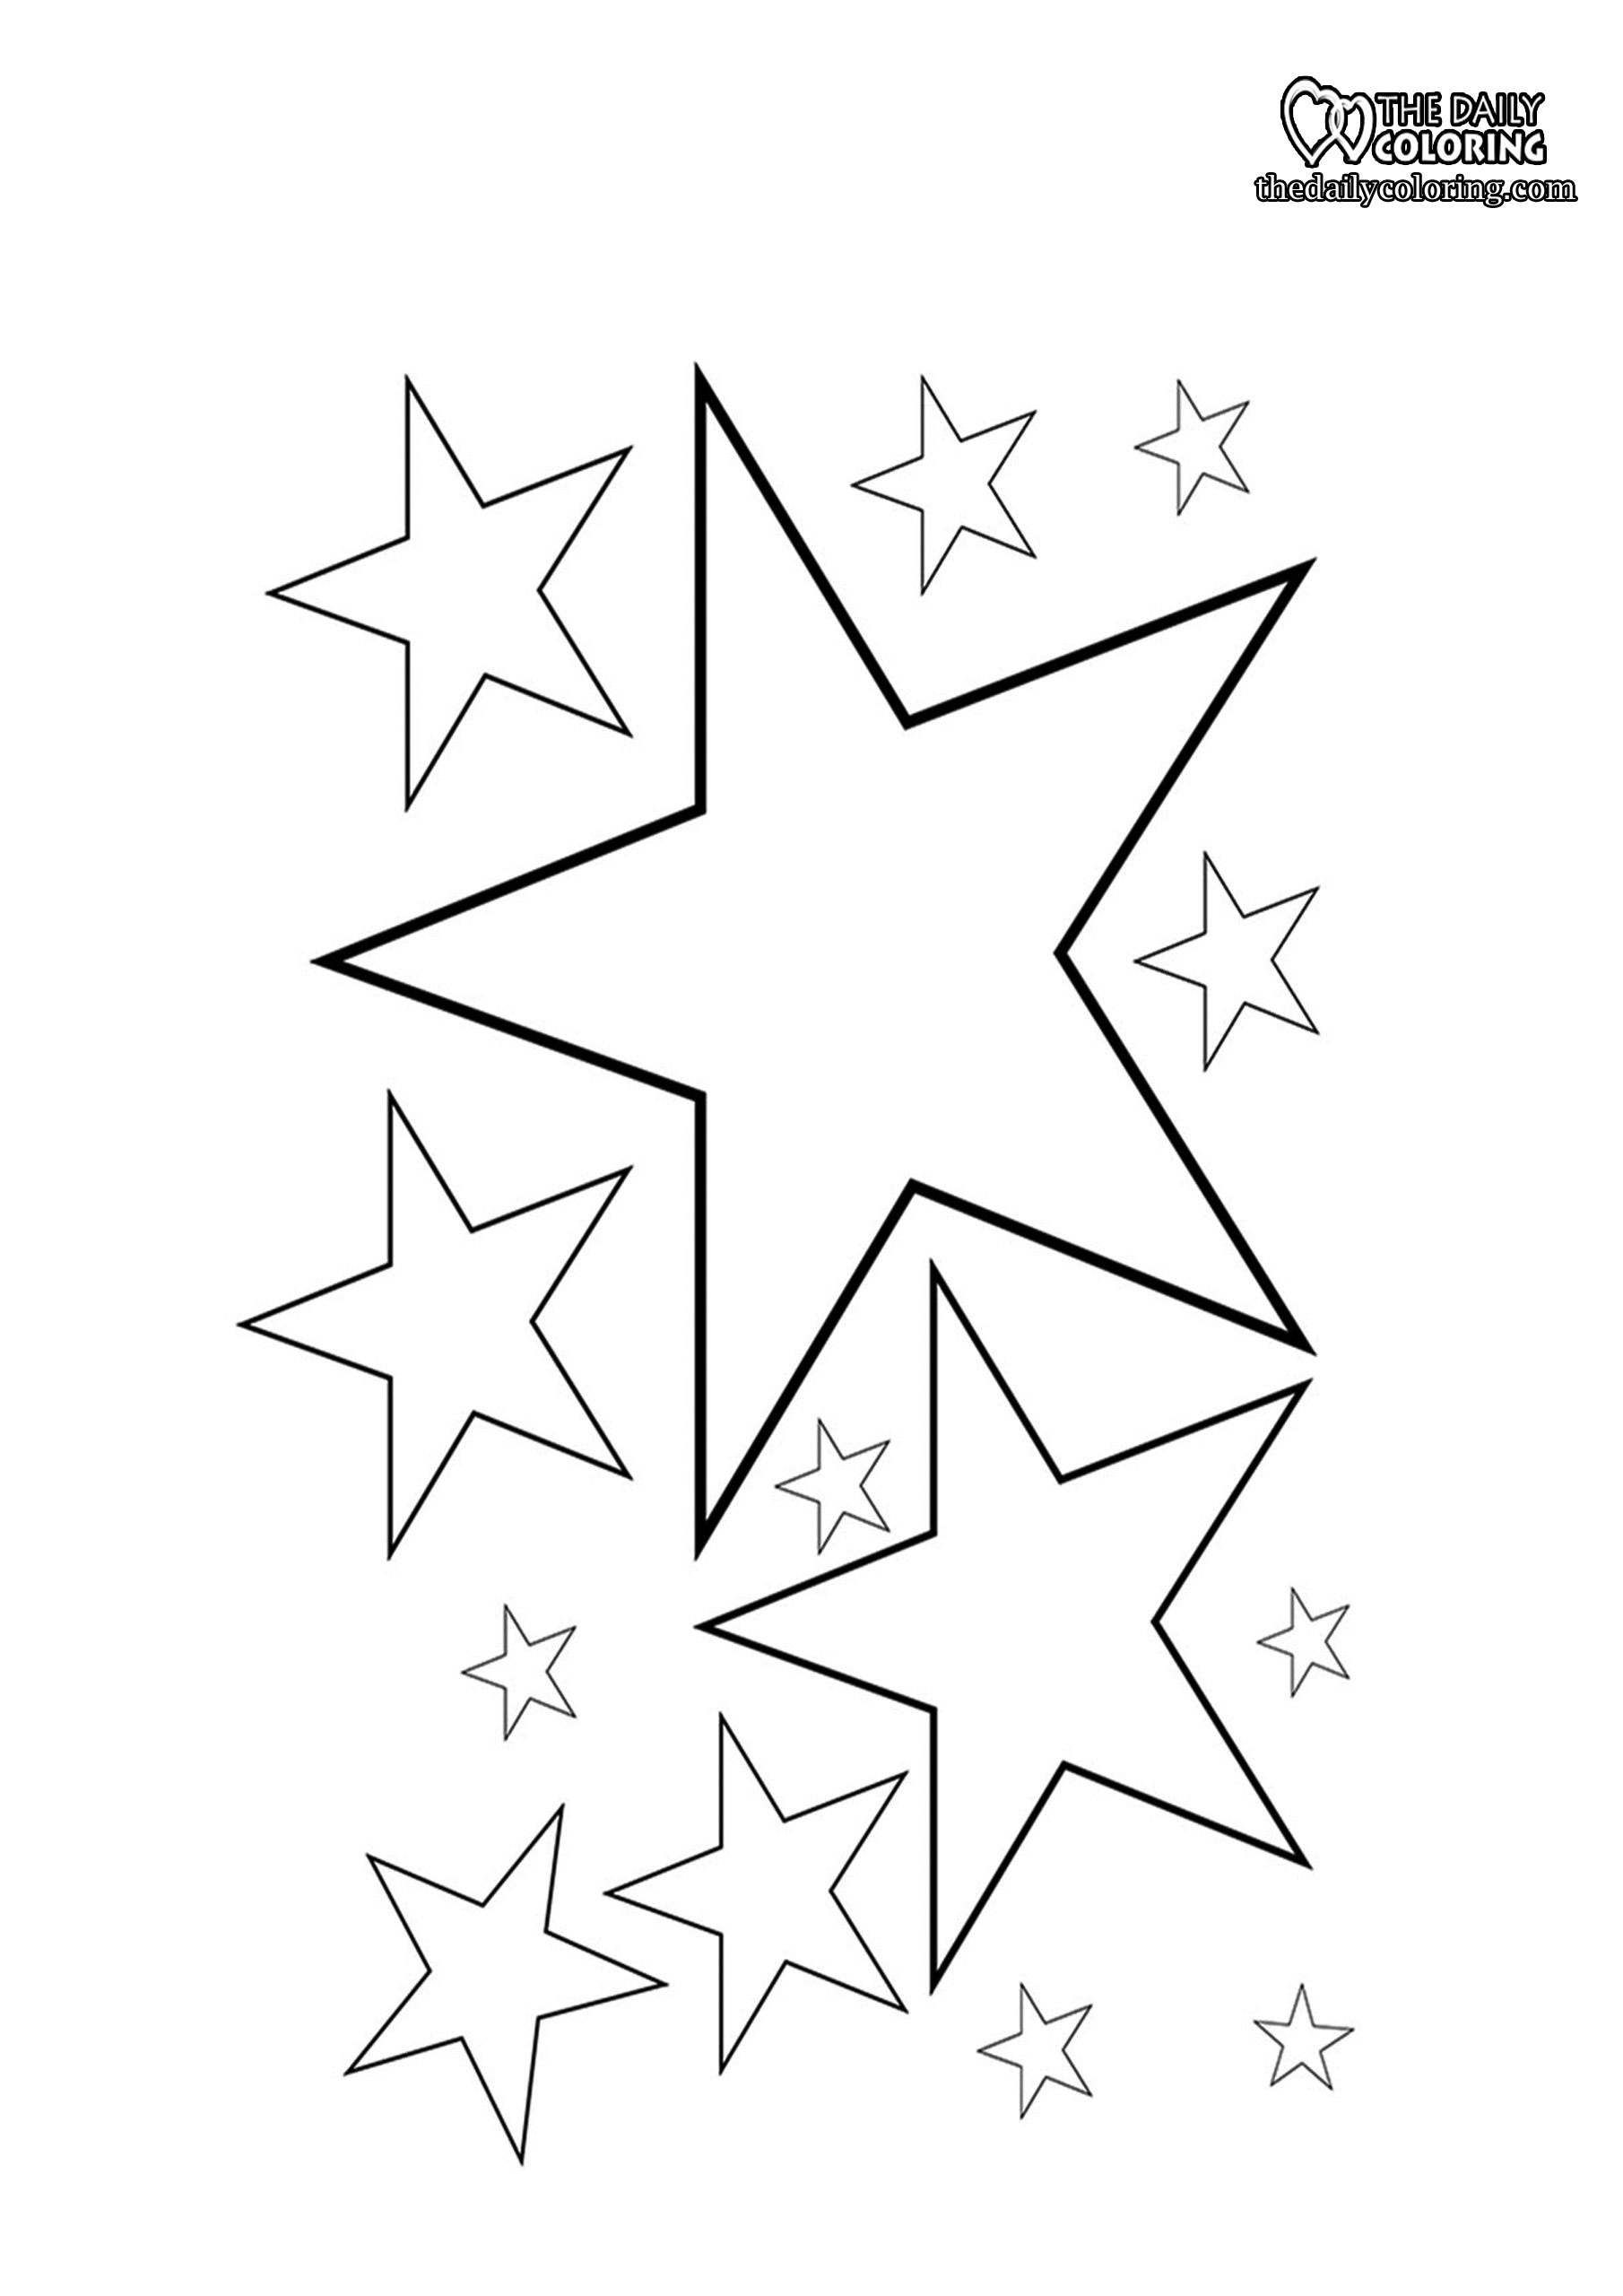 stars-coloring-page